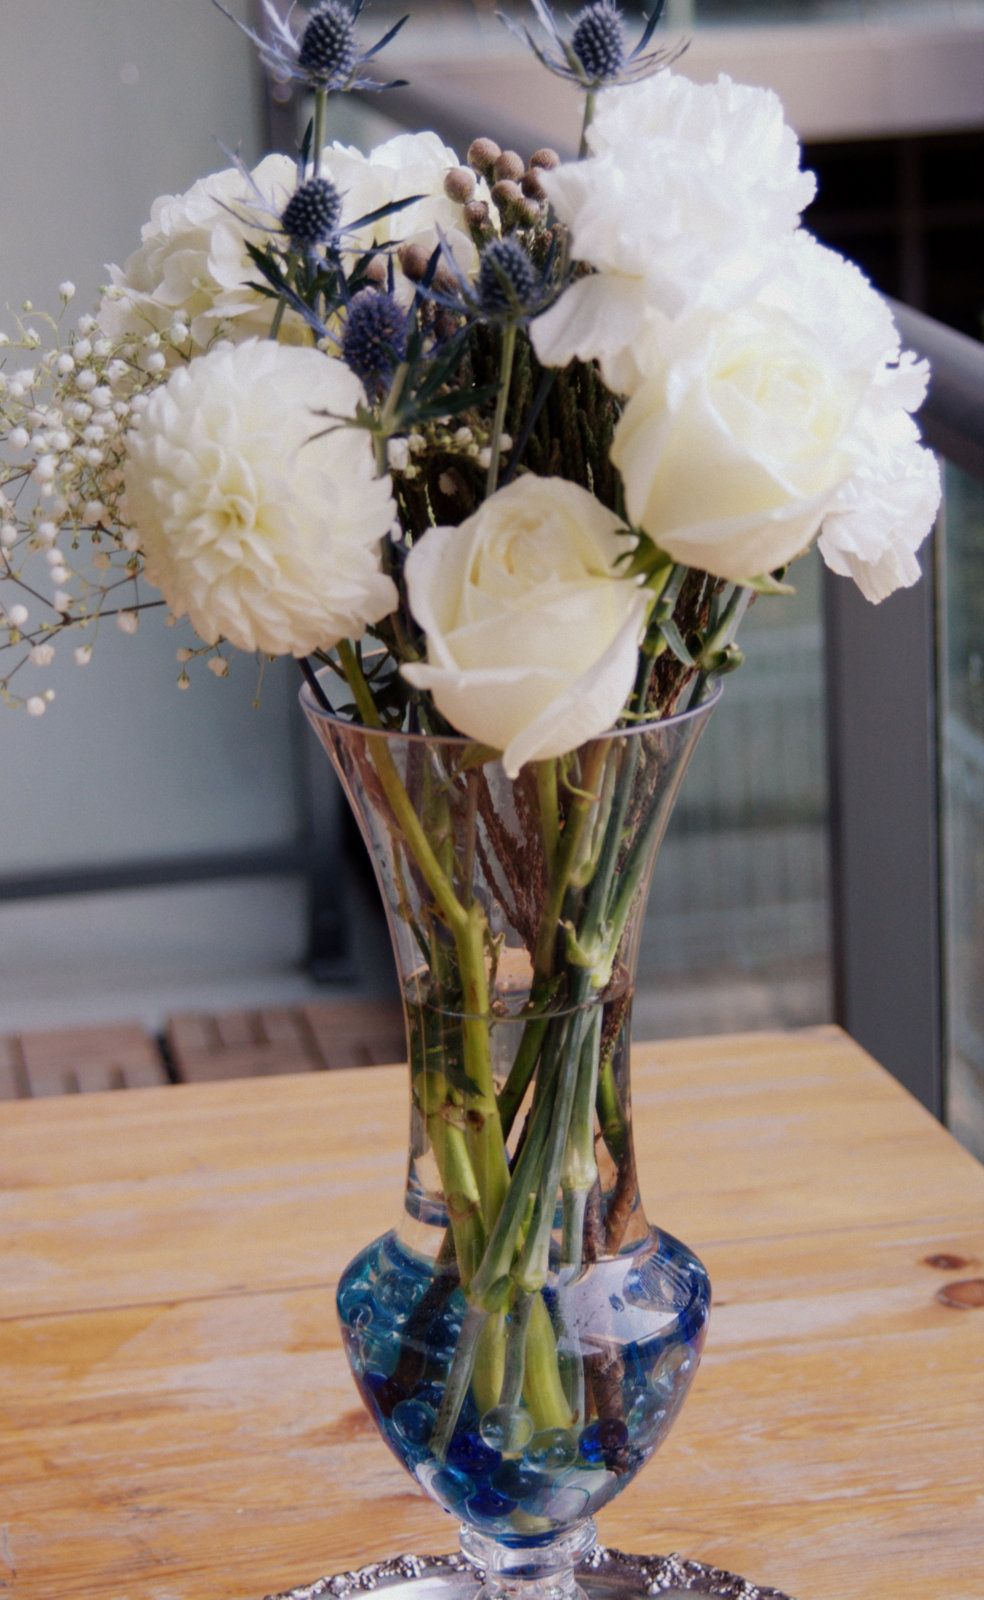 Toronto brides how much did your flowers cost helpful izmirmasajfo Gallery